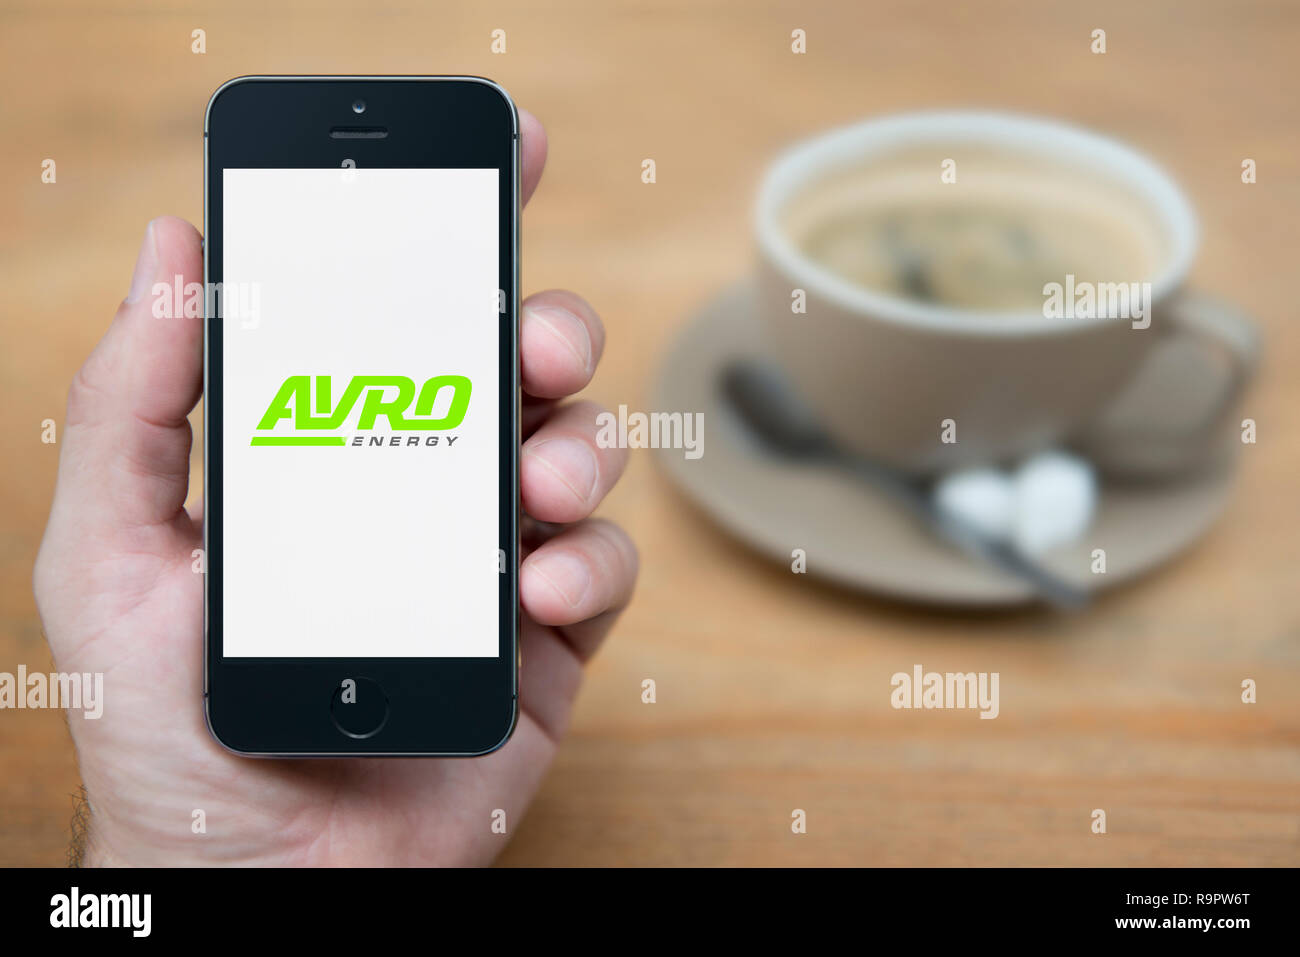 A man looks at his iPhone which displays the Avro Energy logo (Editorial use only). - Stock Image